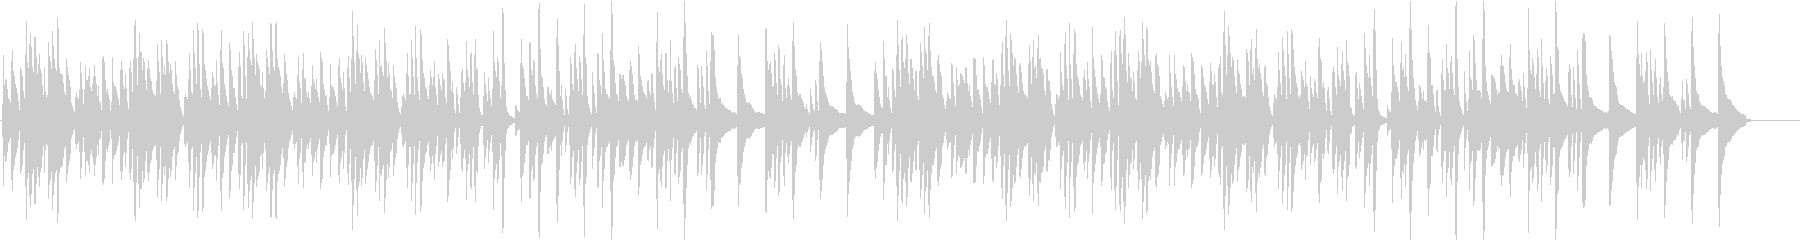 The move of a forest dwarf's unreproduced waveform